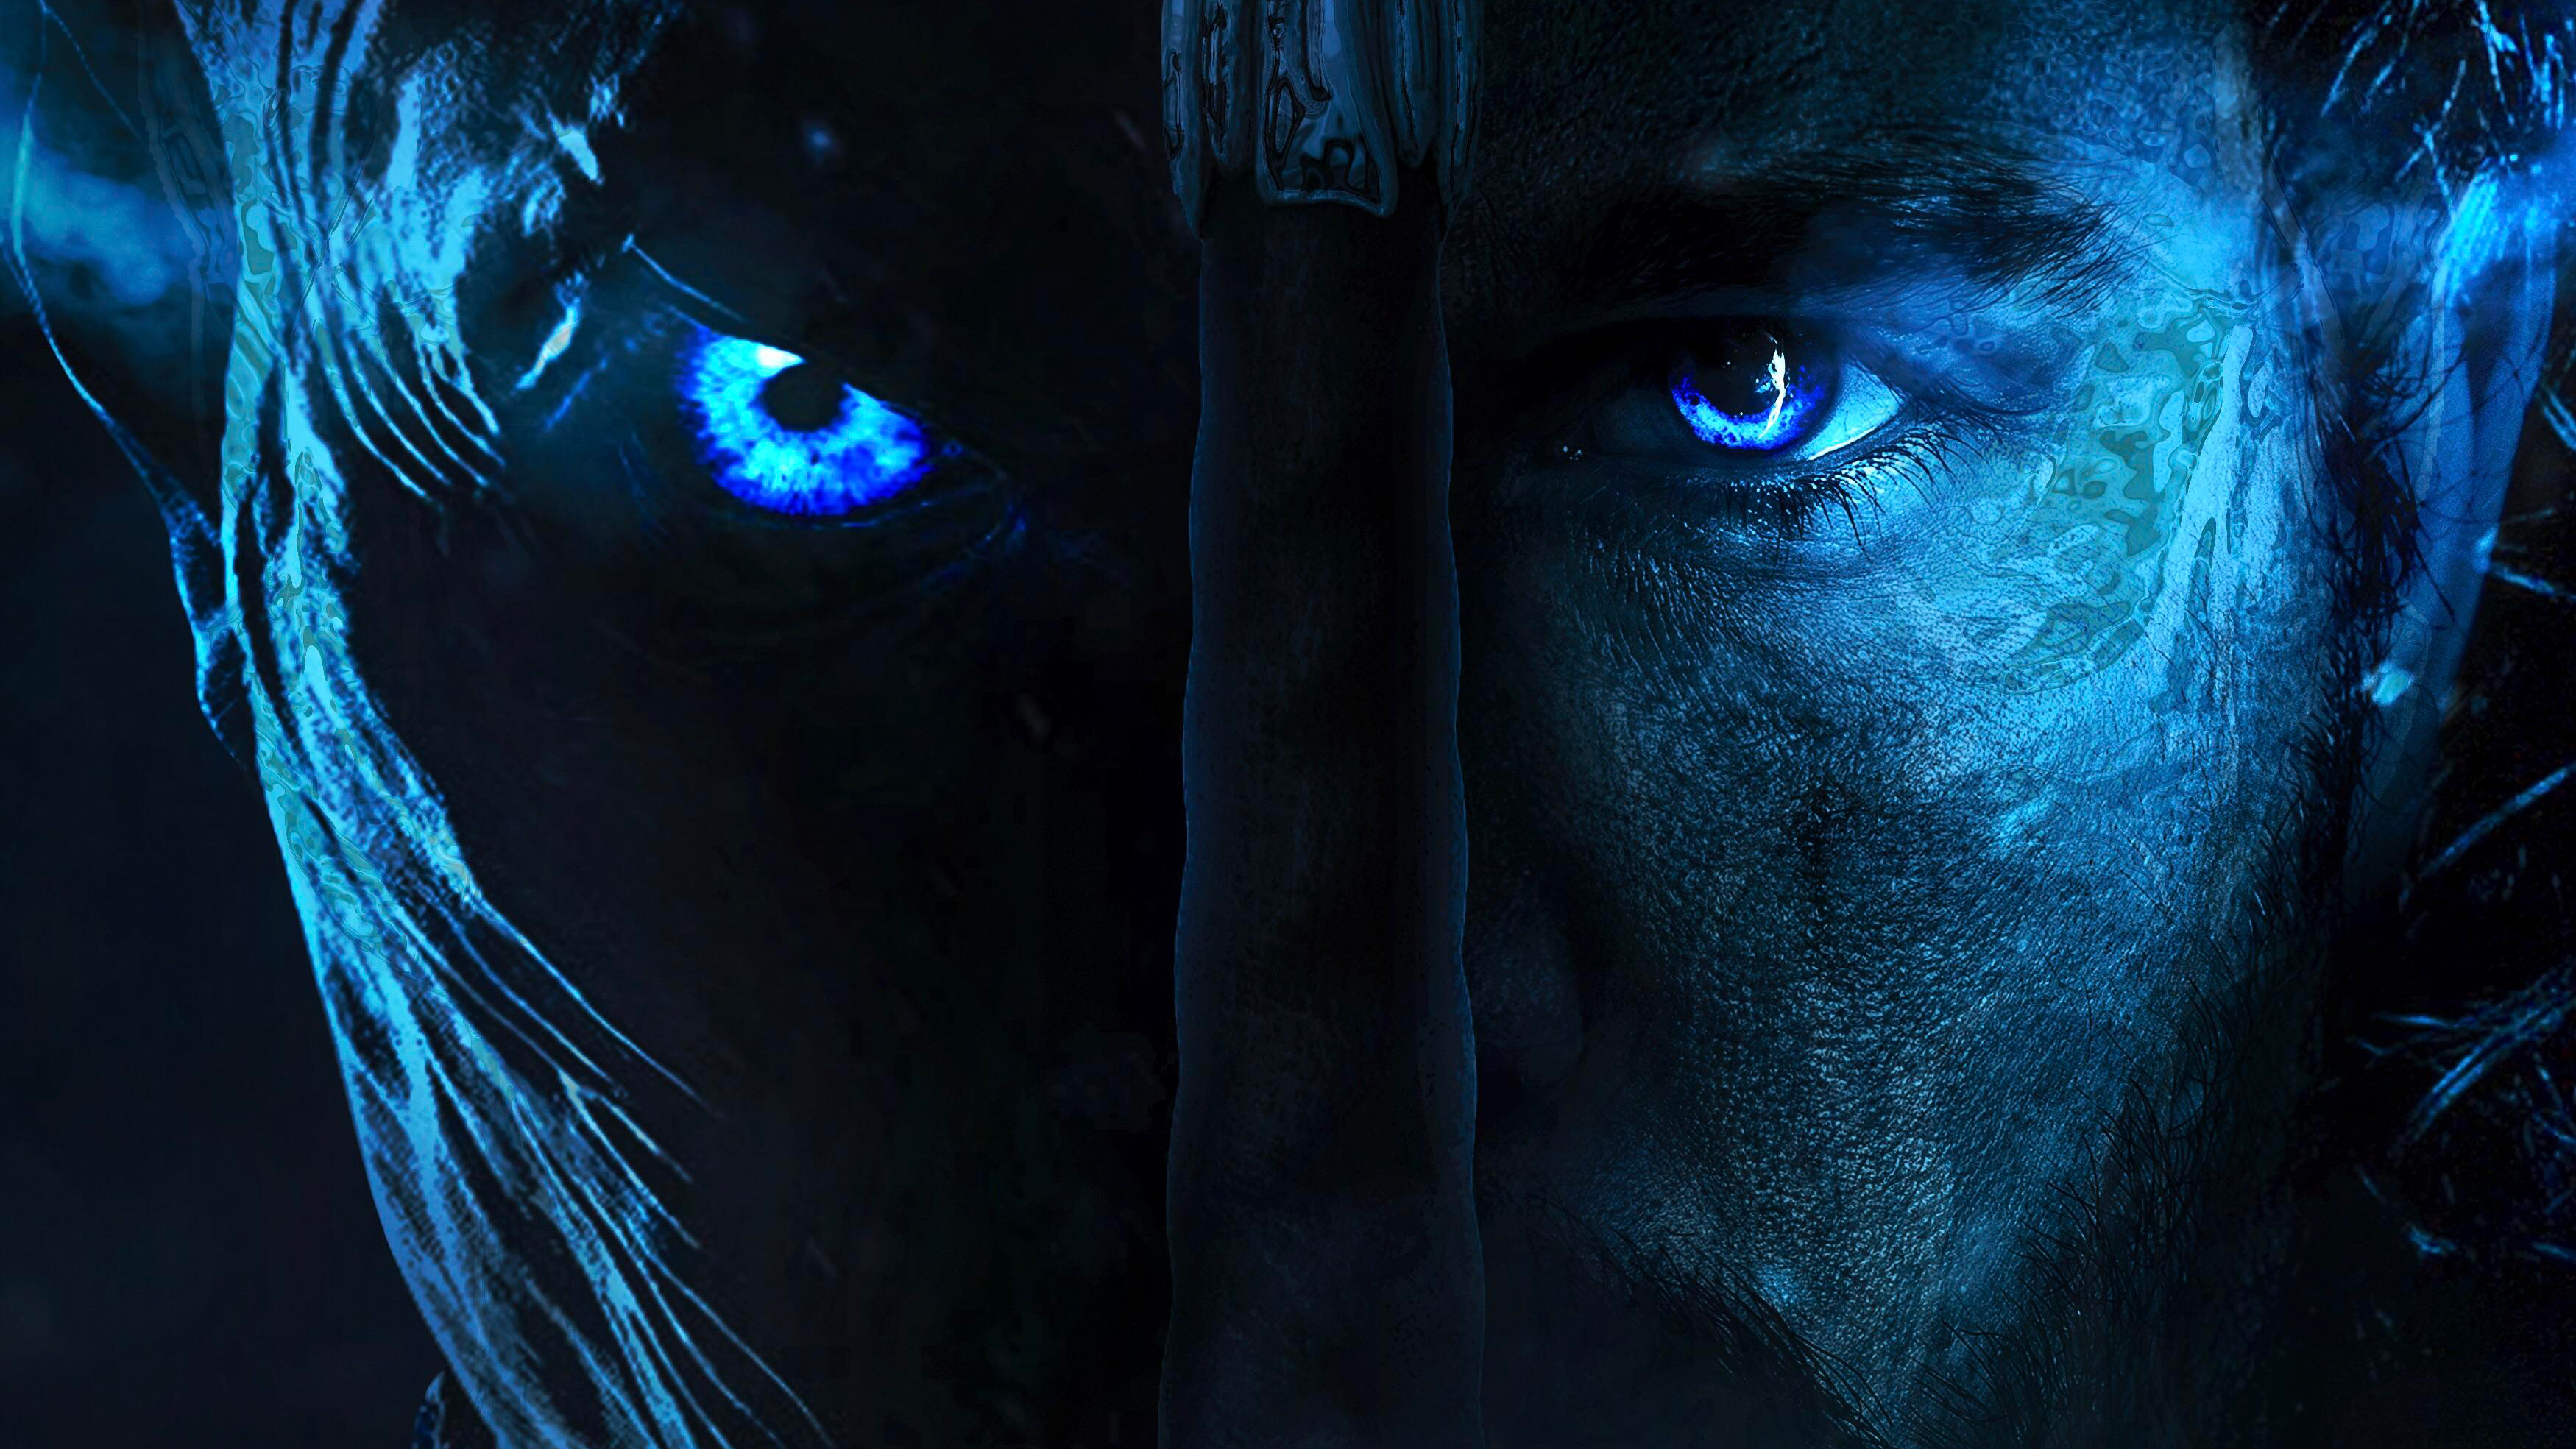 Game Of Thrones Season 8 2019 Hd Tv Shows 4k Wallpapers